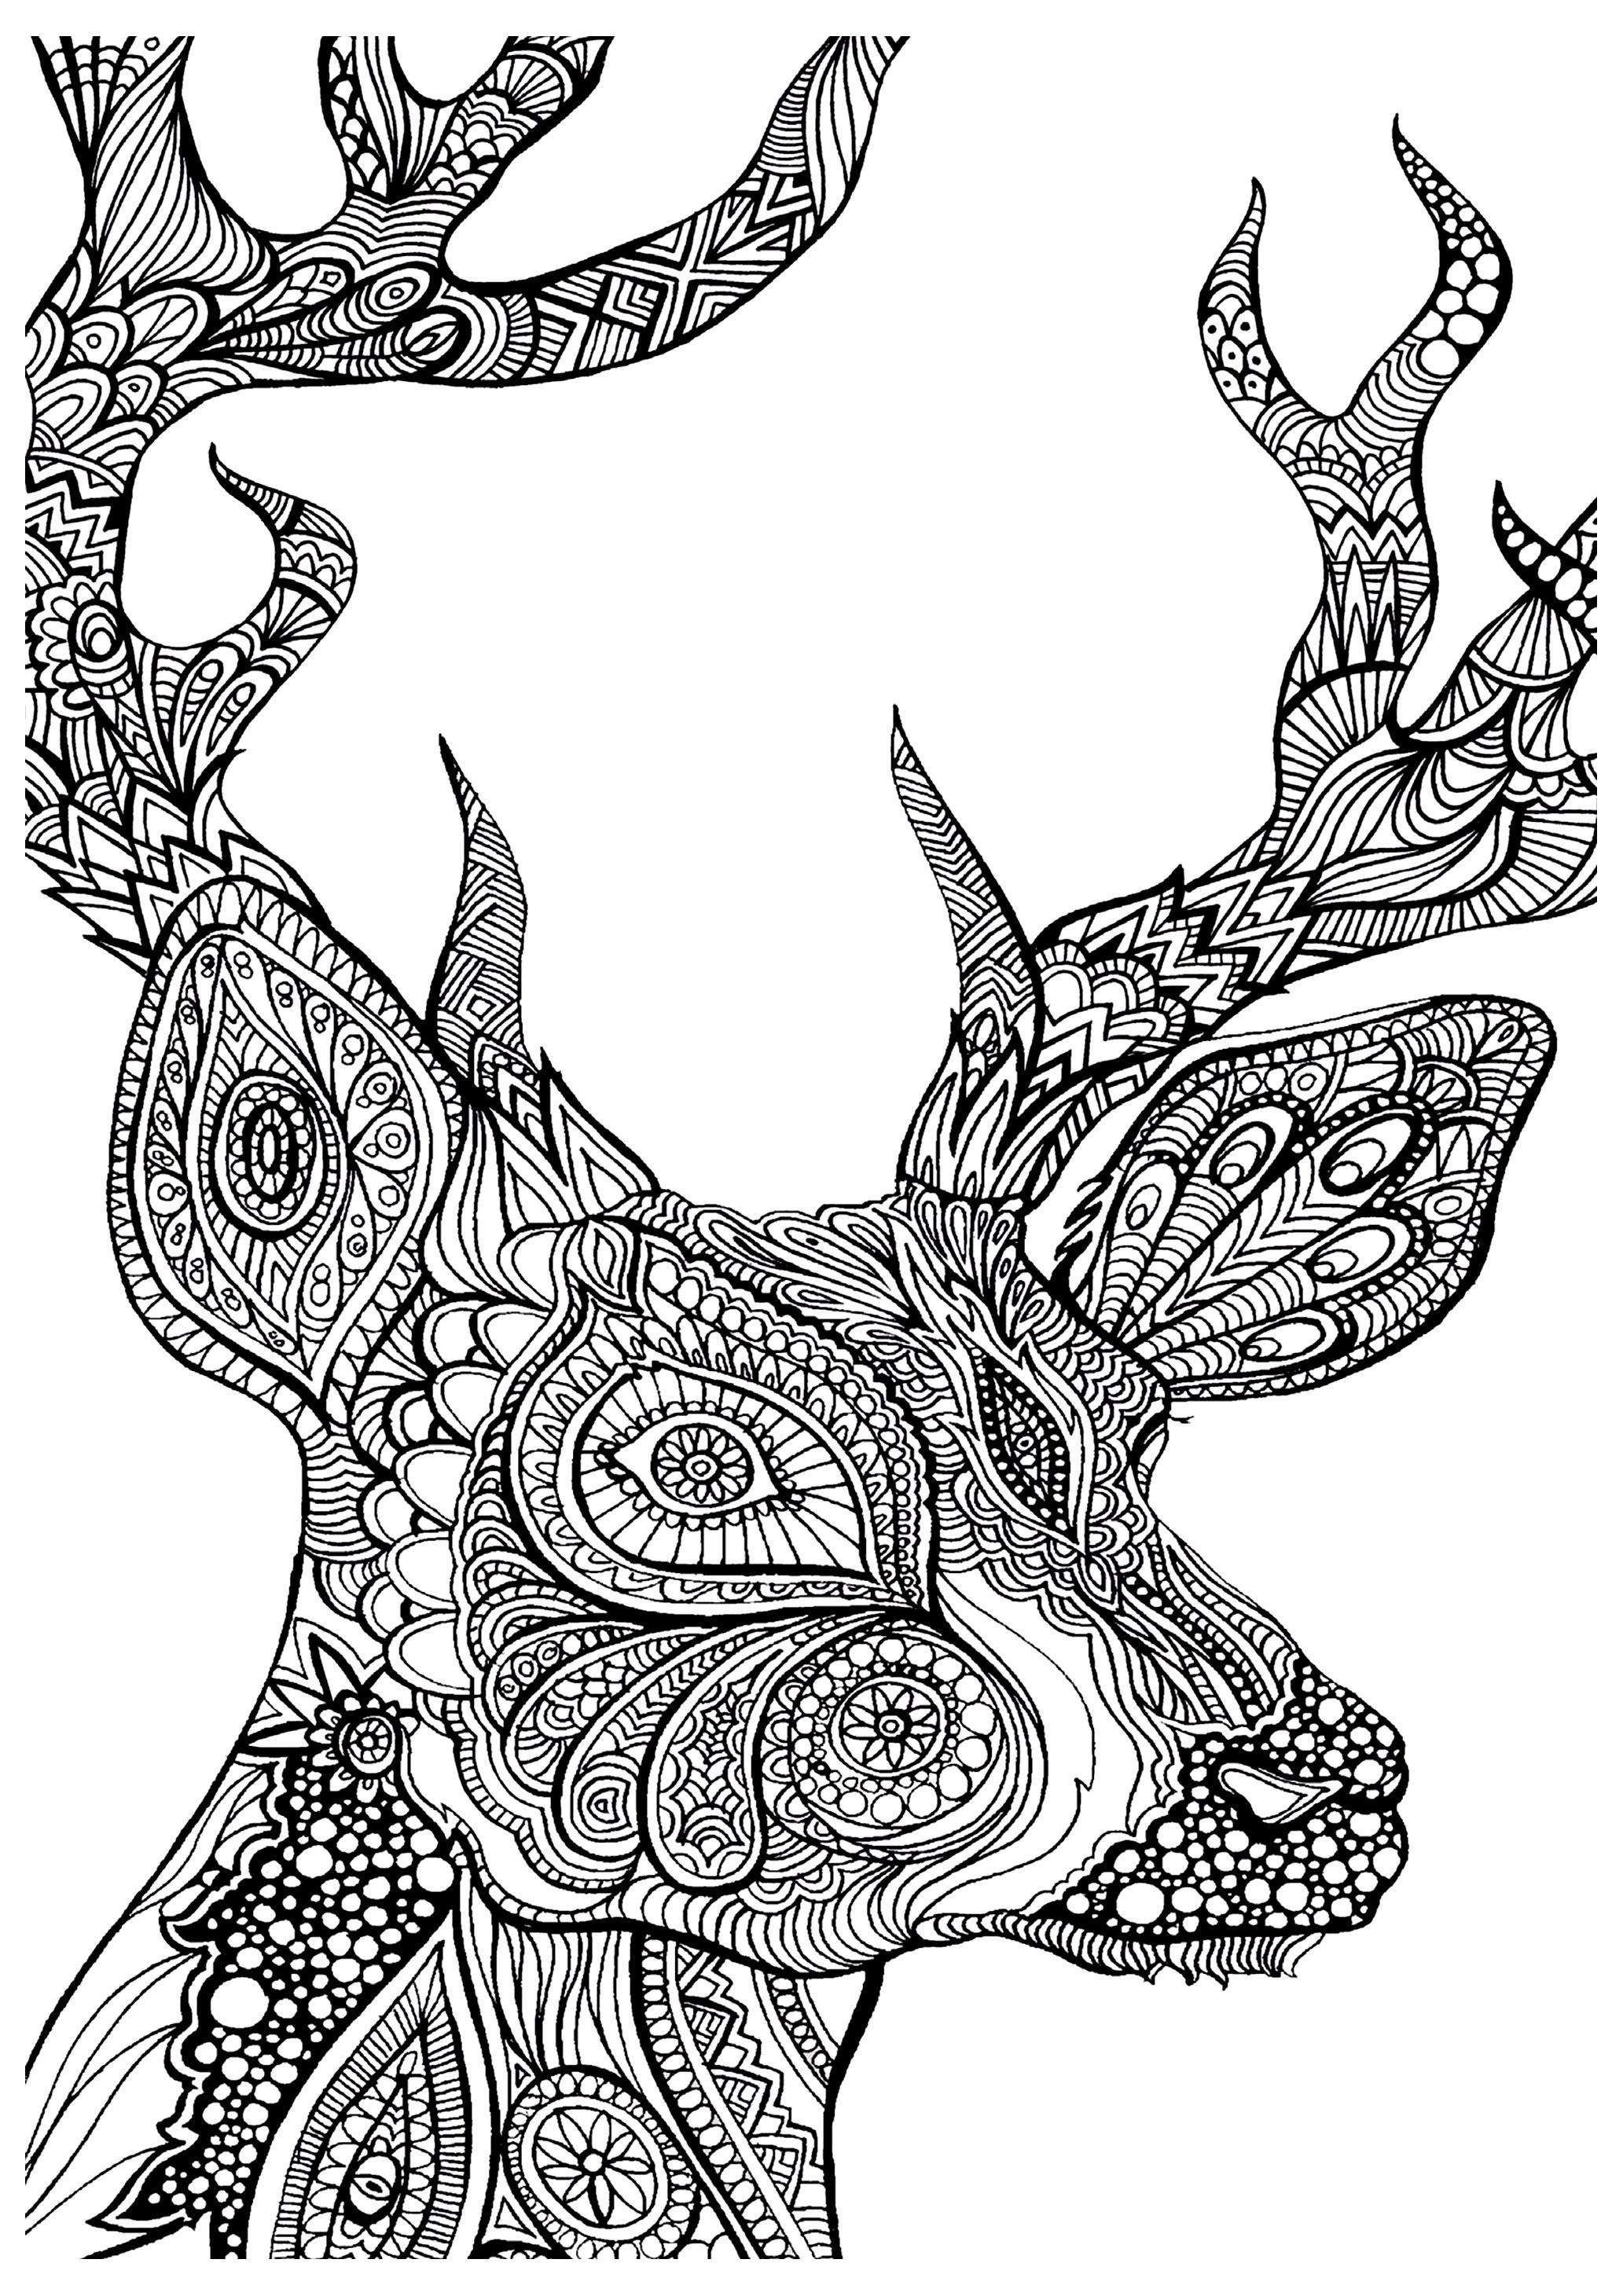 Free Coloring pages printables Adult coloring Fun activities